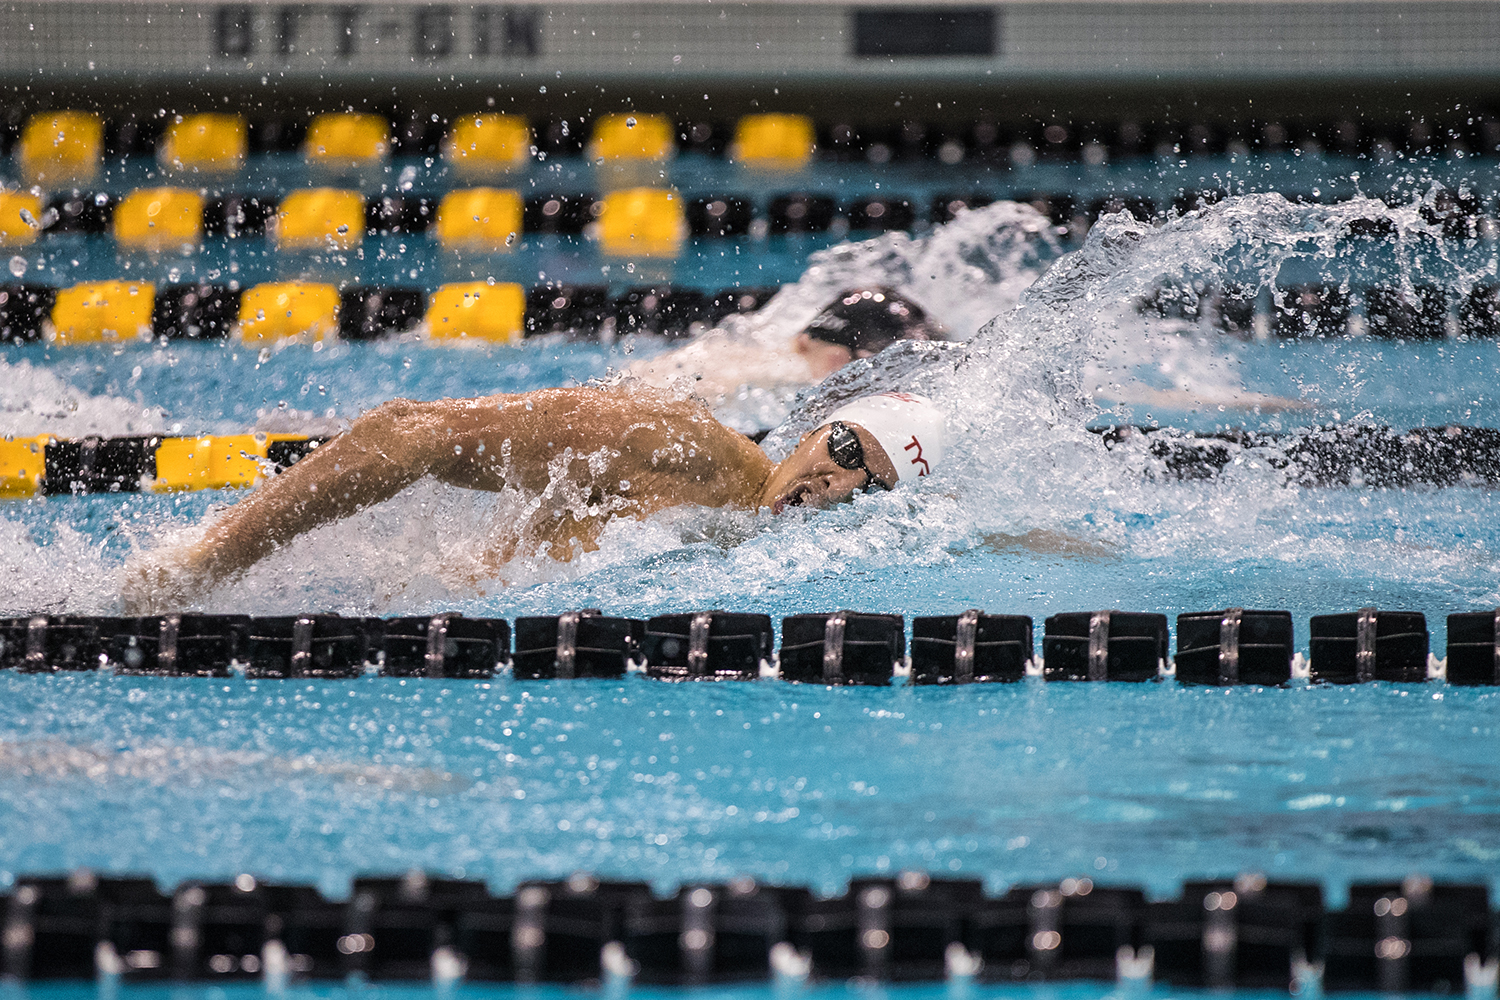 Swimmers+race+in+the+800+Freestyle+Relay+during+the+first+day+of+the+2019+Big+Ten+Men%27s+Swimming+and+Diving+Championships+at+the+CRWC+on+Wednesday%2C+February+27%2C+2019.+